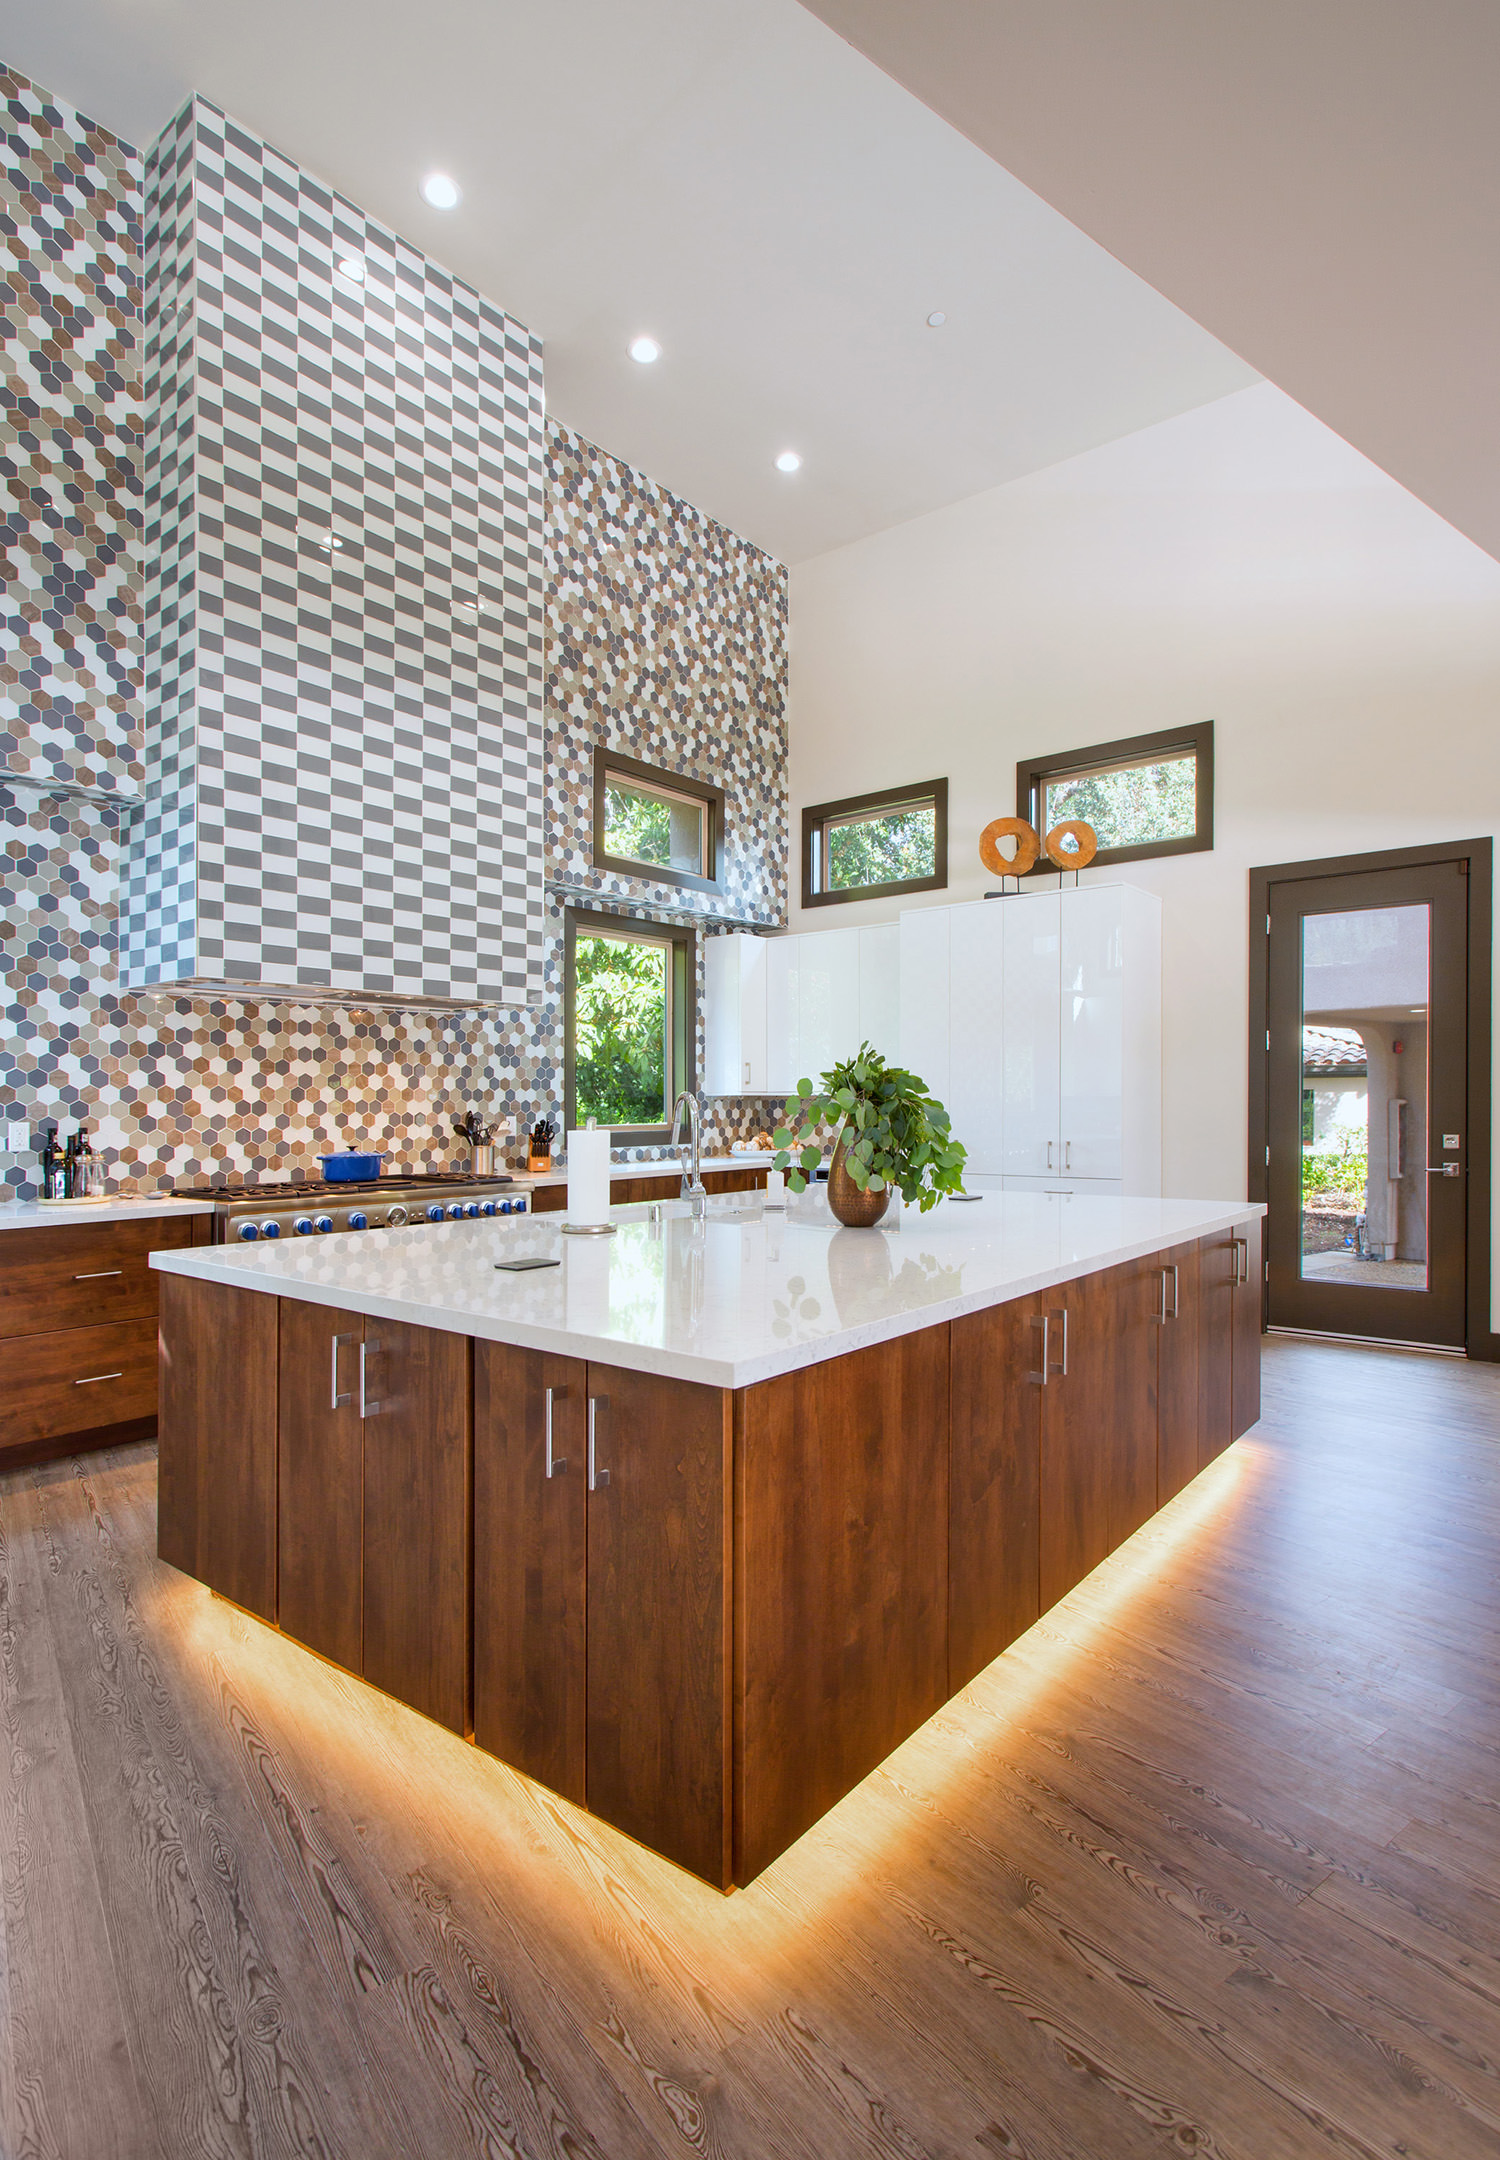 kitchen-interior-design-los-altos-california-ktj-design-co-10.jpg